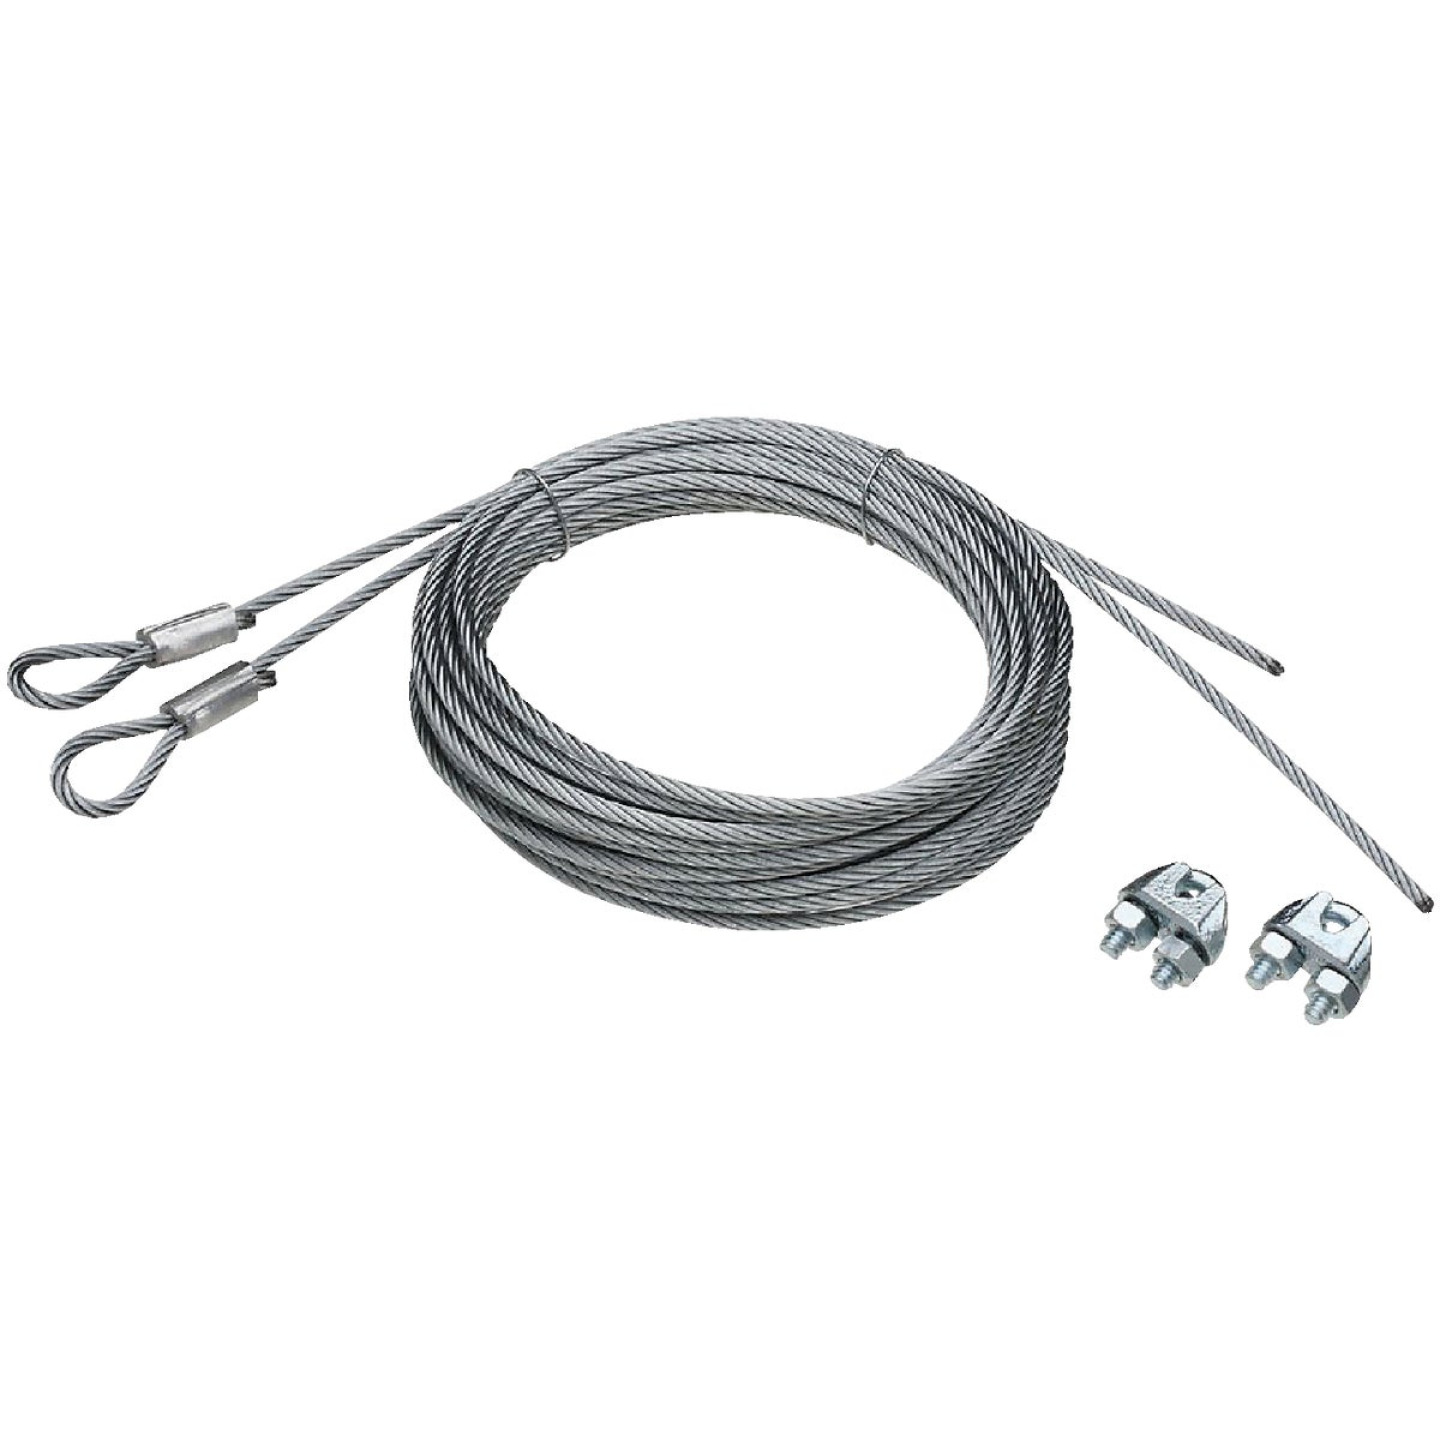 National 5/32 In. Dia. x 14 Ft. L. Commercial Garage Door Heavy-Duty Extension Cable (2 Count) Image 1